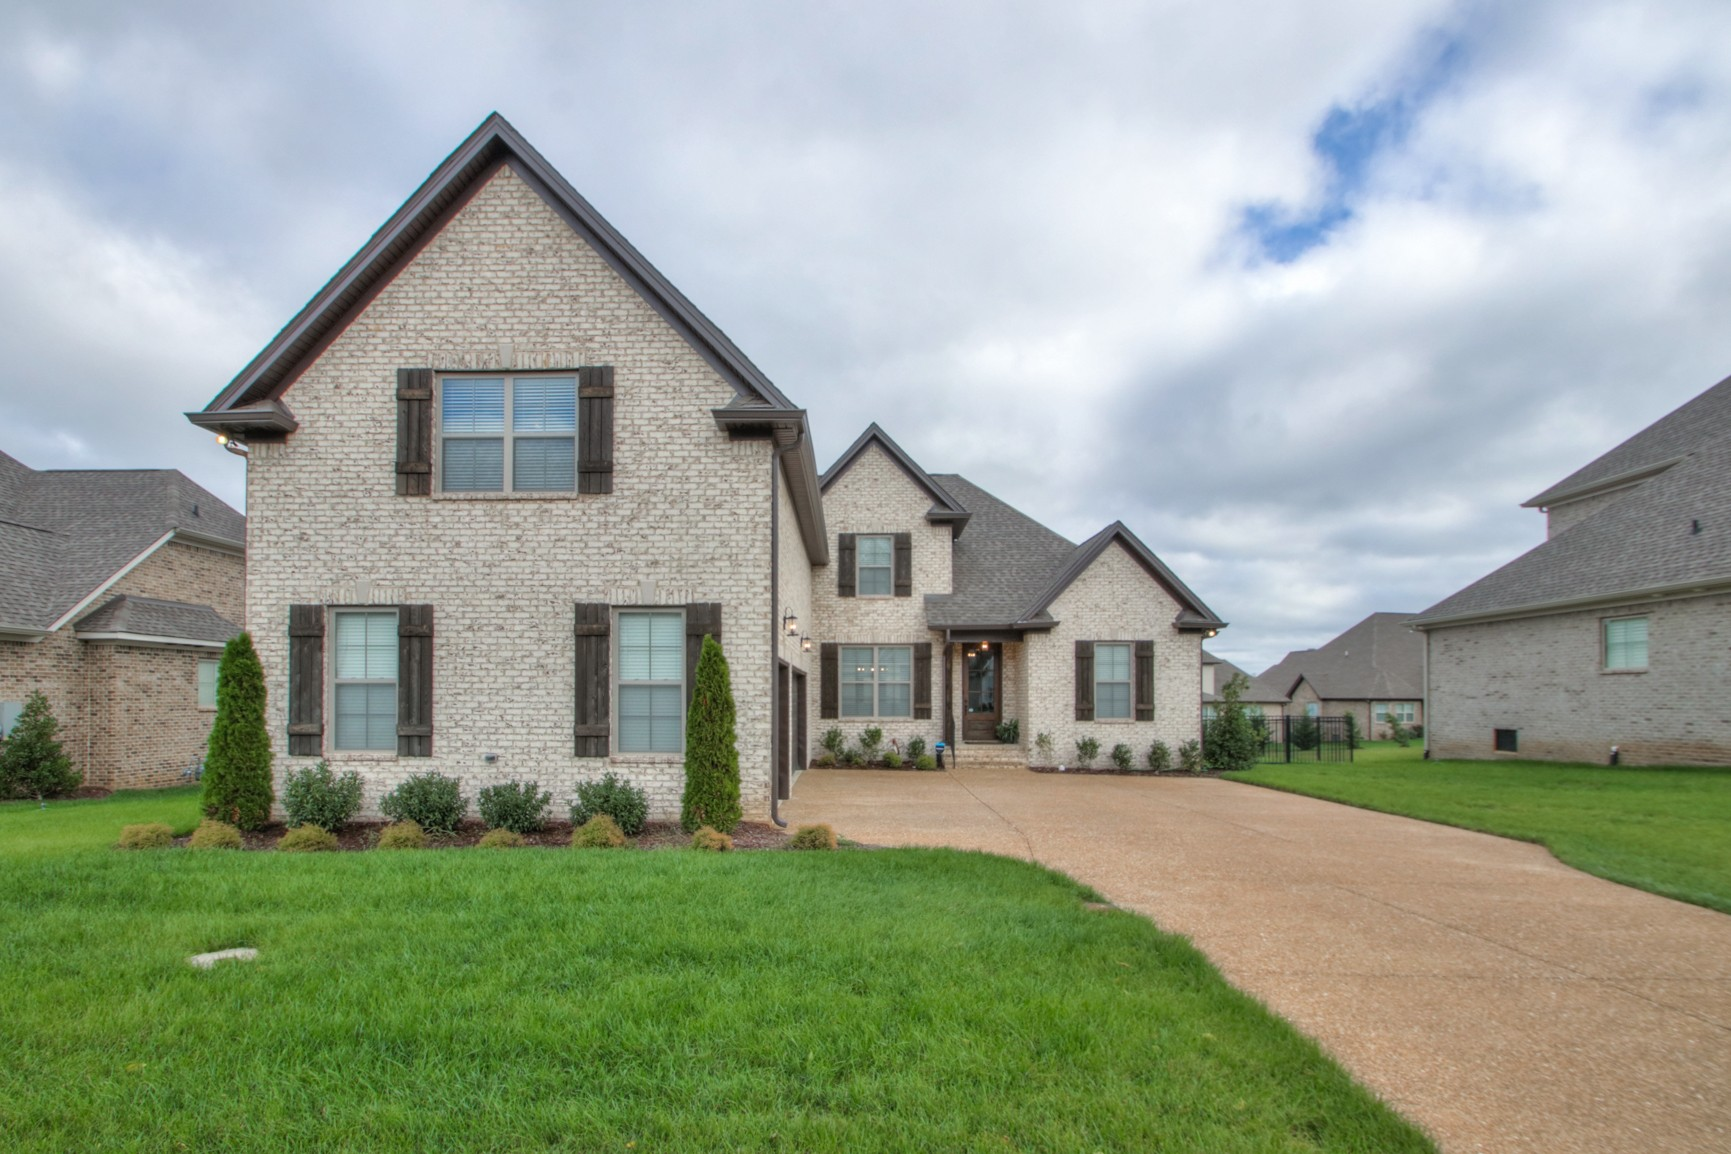 1580 Bunbury Dr, Thompsons Station, TN 37179 - Thompsons Station, TN real estate listing